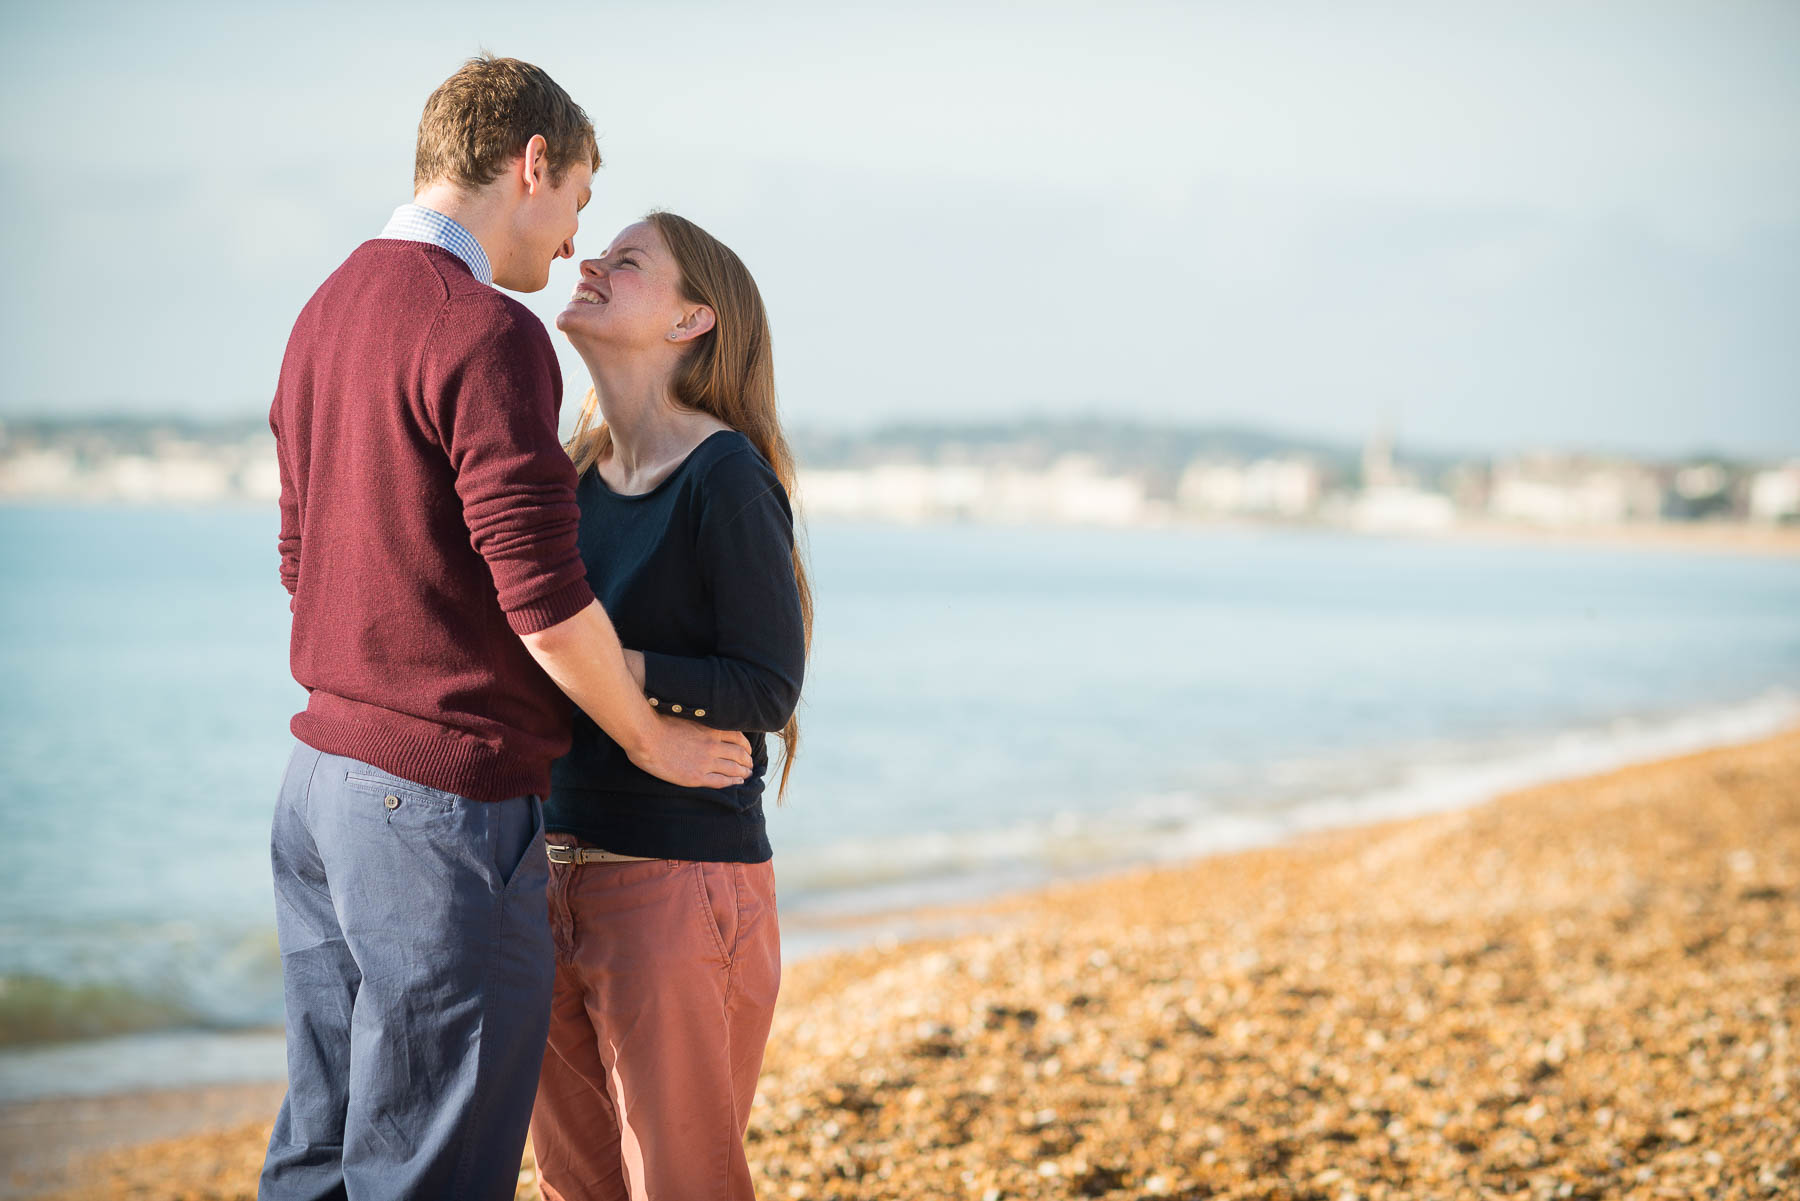 weymouth-beach-gordon-engagement-shoot-happy-couple-in-love-11